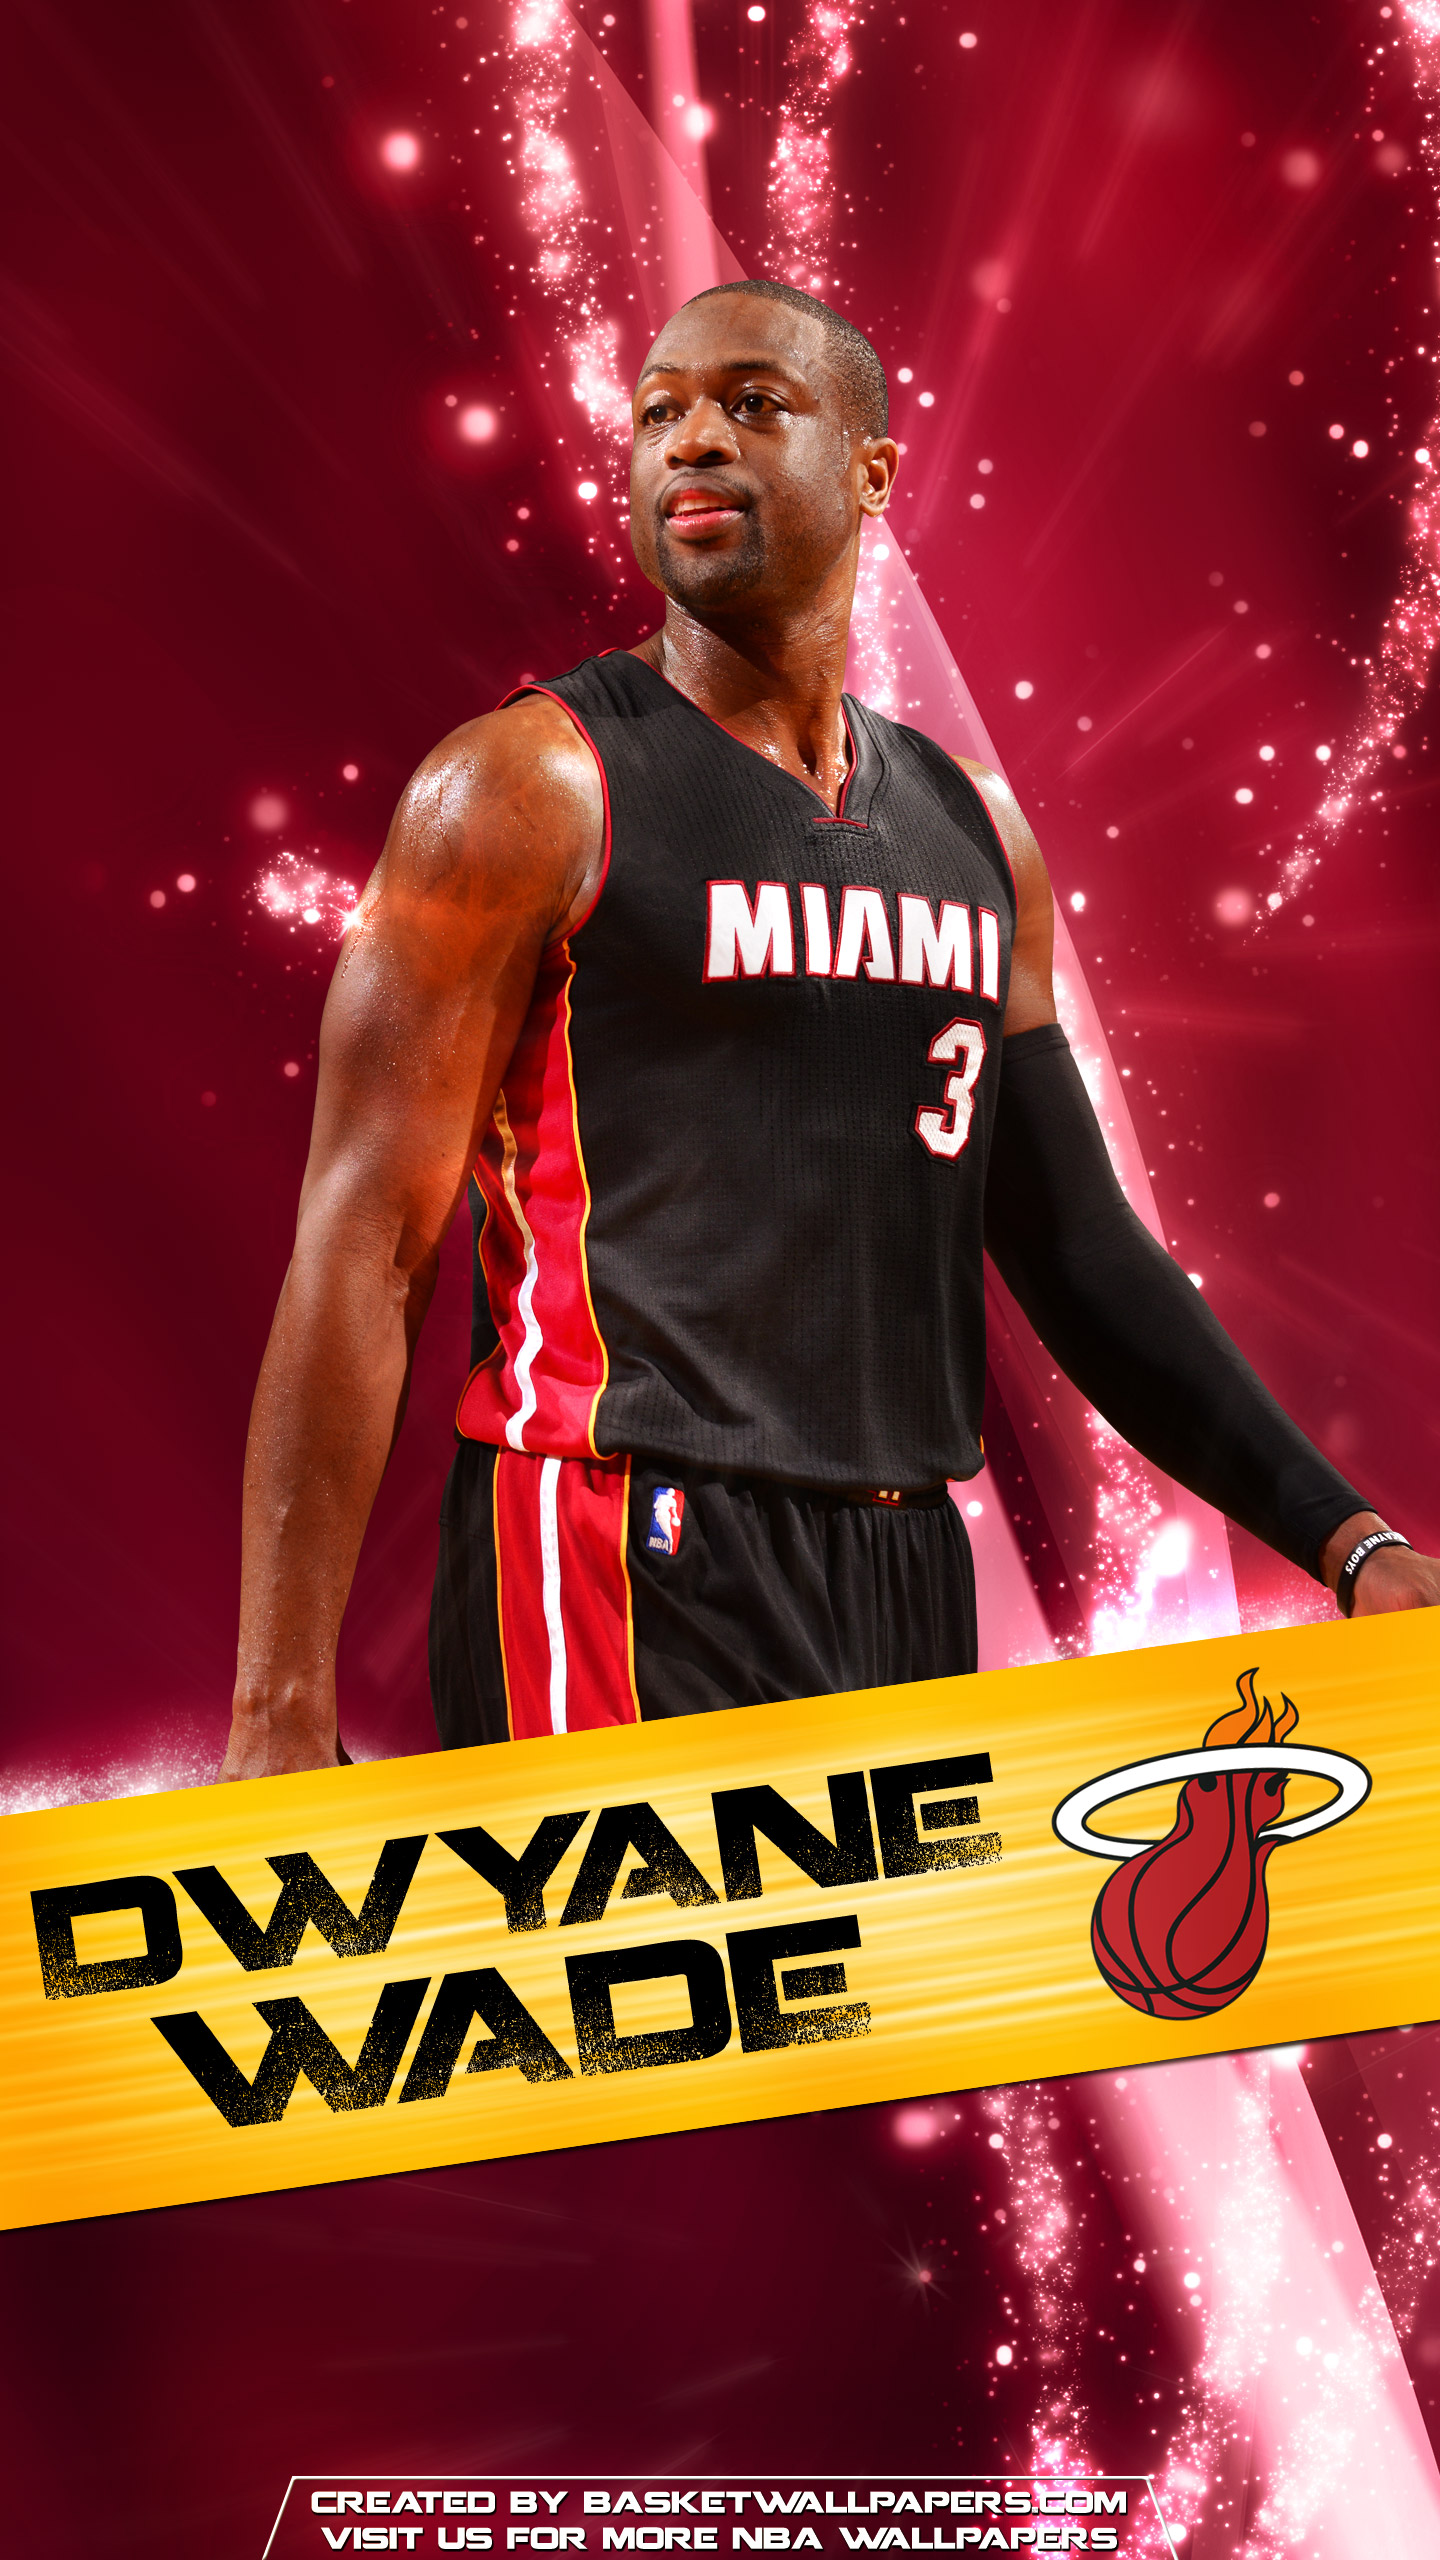 Dwyane Wade Miami Heat 2016 Mobile Wallpaper Basketball 1440x2560